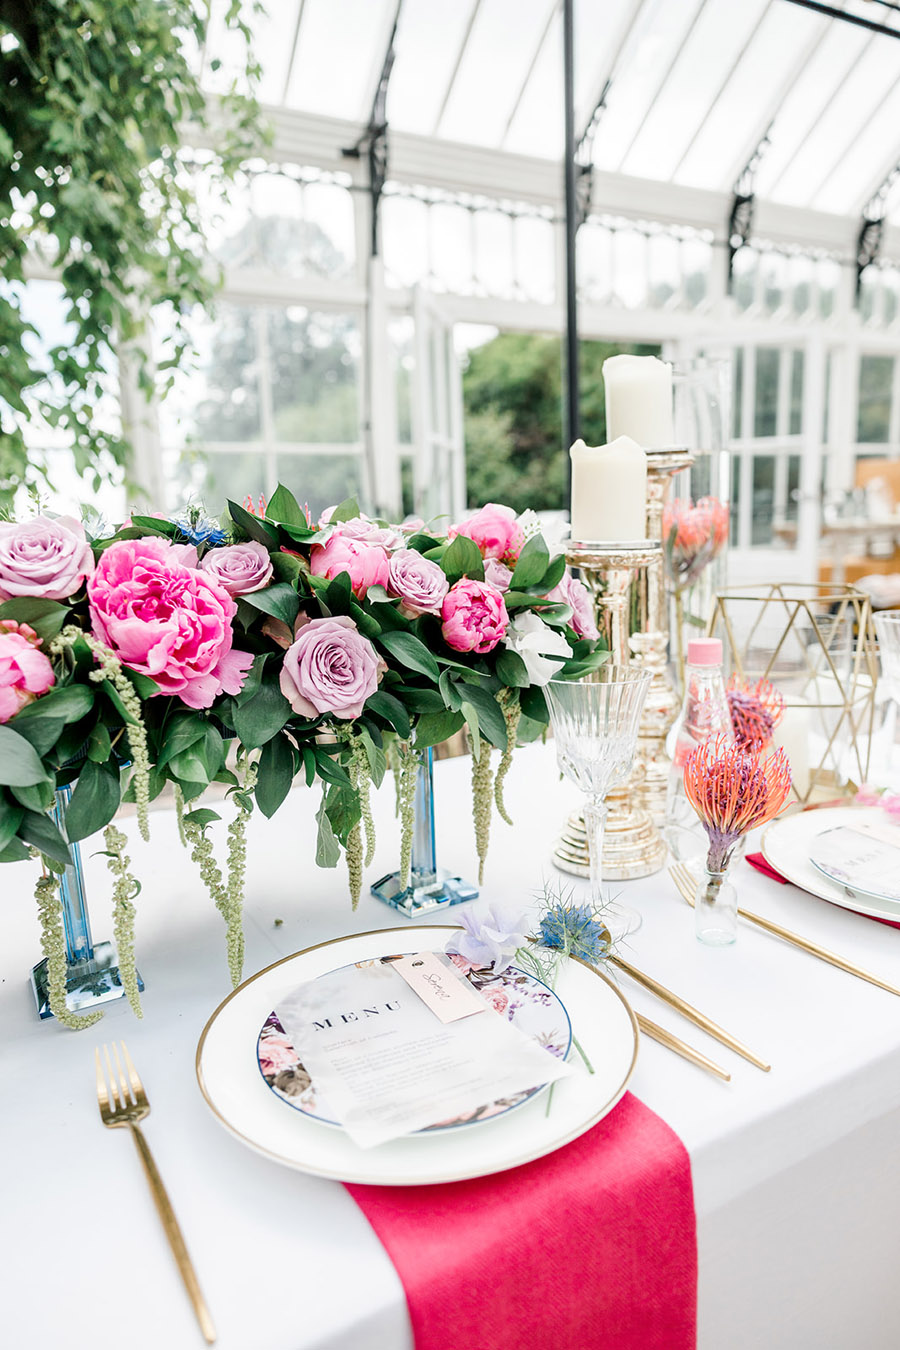 Modern intimate wedding styling inspiration from Slindon House, image credit Kelsie Scully (15)